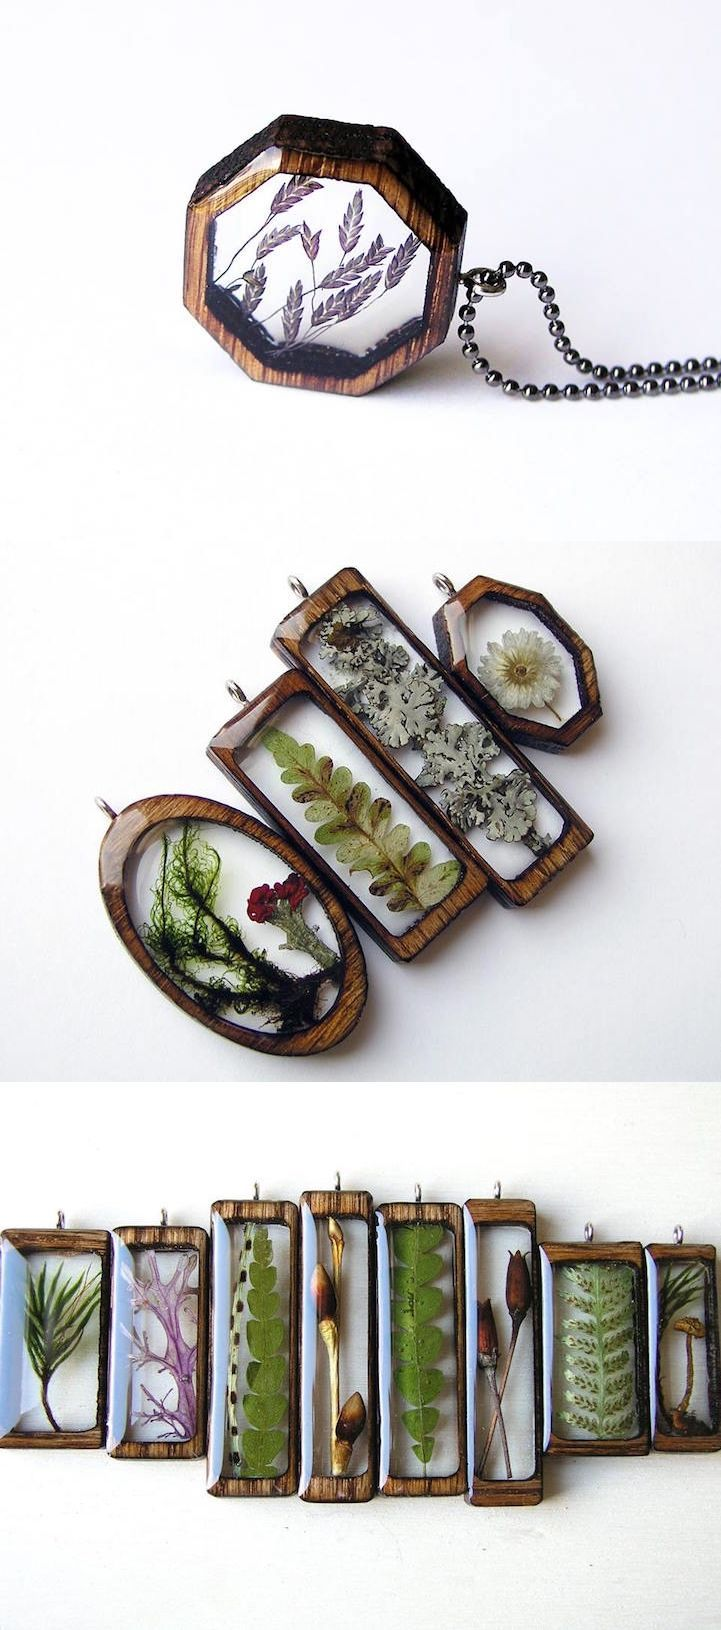 Foraged leaves set in wood and resin. Pressed dried leaf and flowers artwork, such a beautiful natural look to these pendants, nature jewelry.